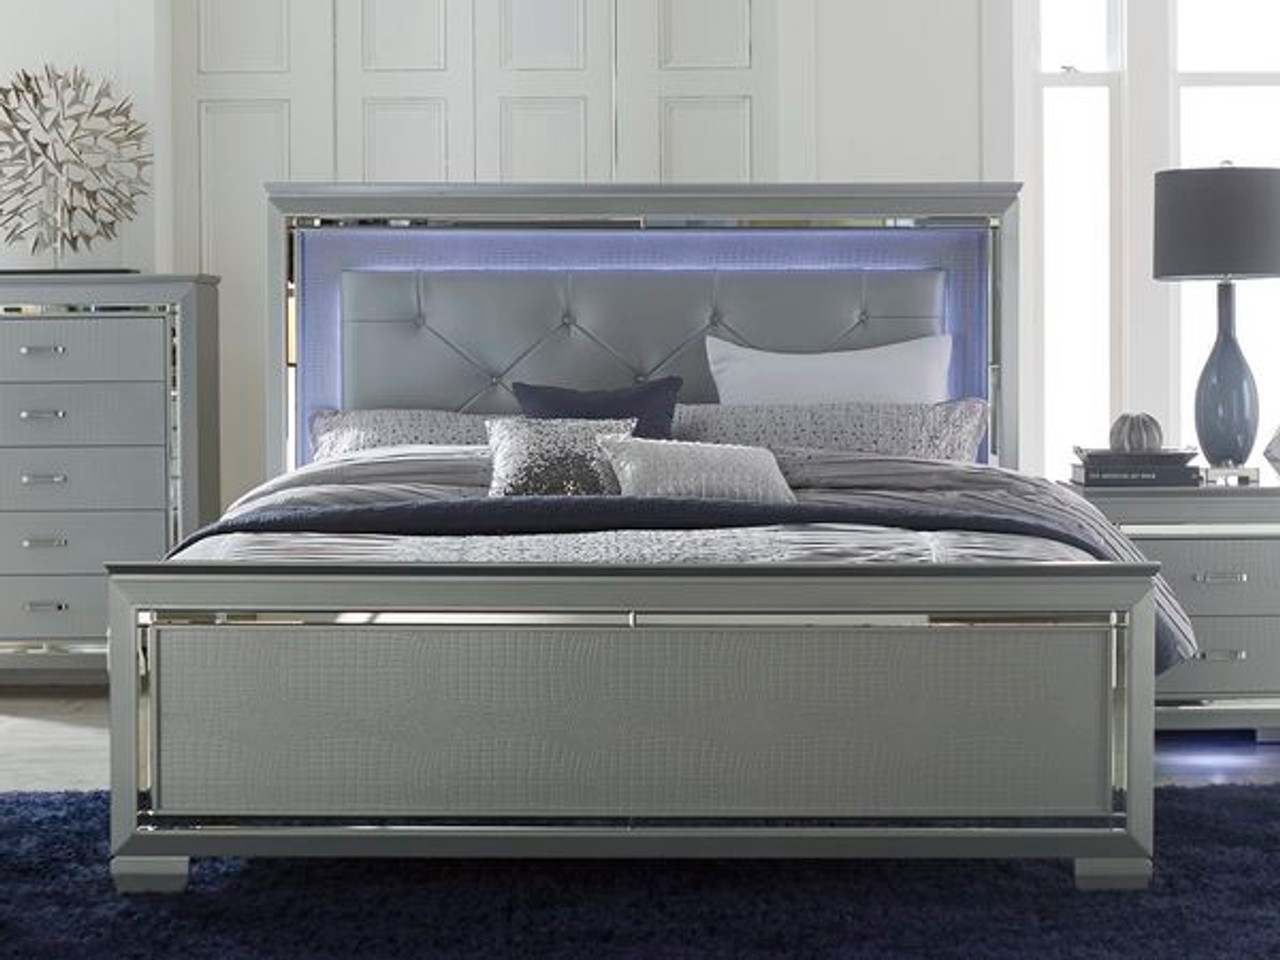 Homelegance Allura Modern Bed Silver With Touch Engaged LED Lighting    DealBeds.com